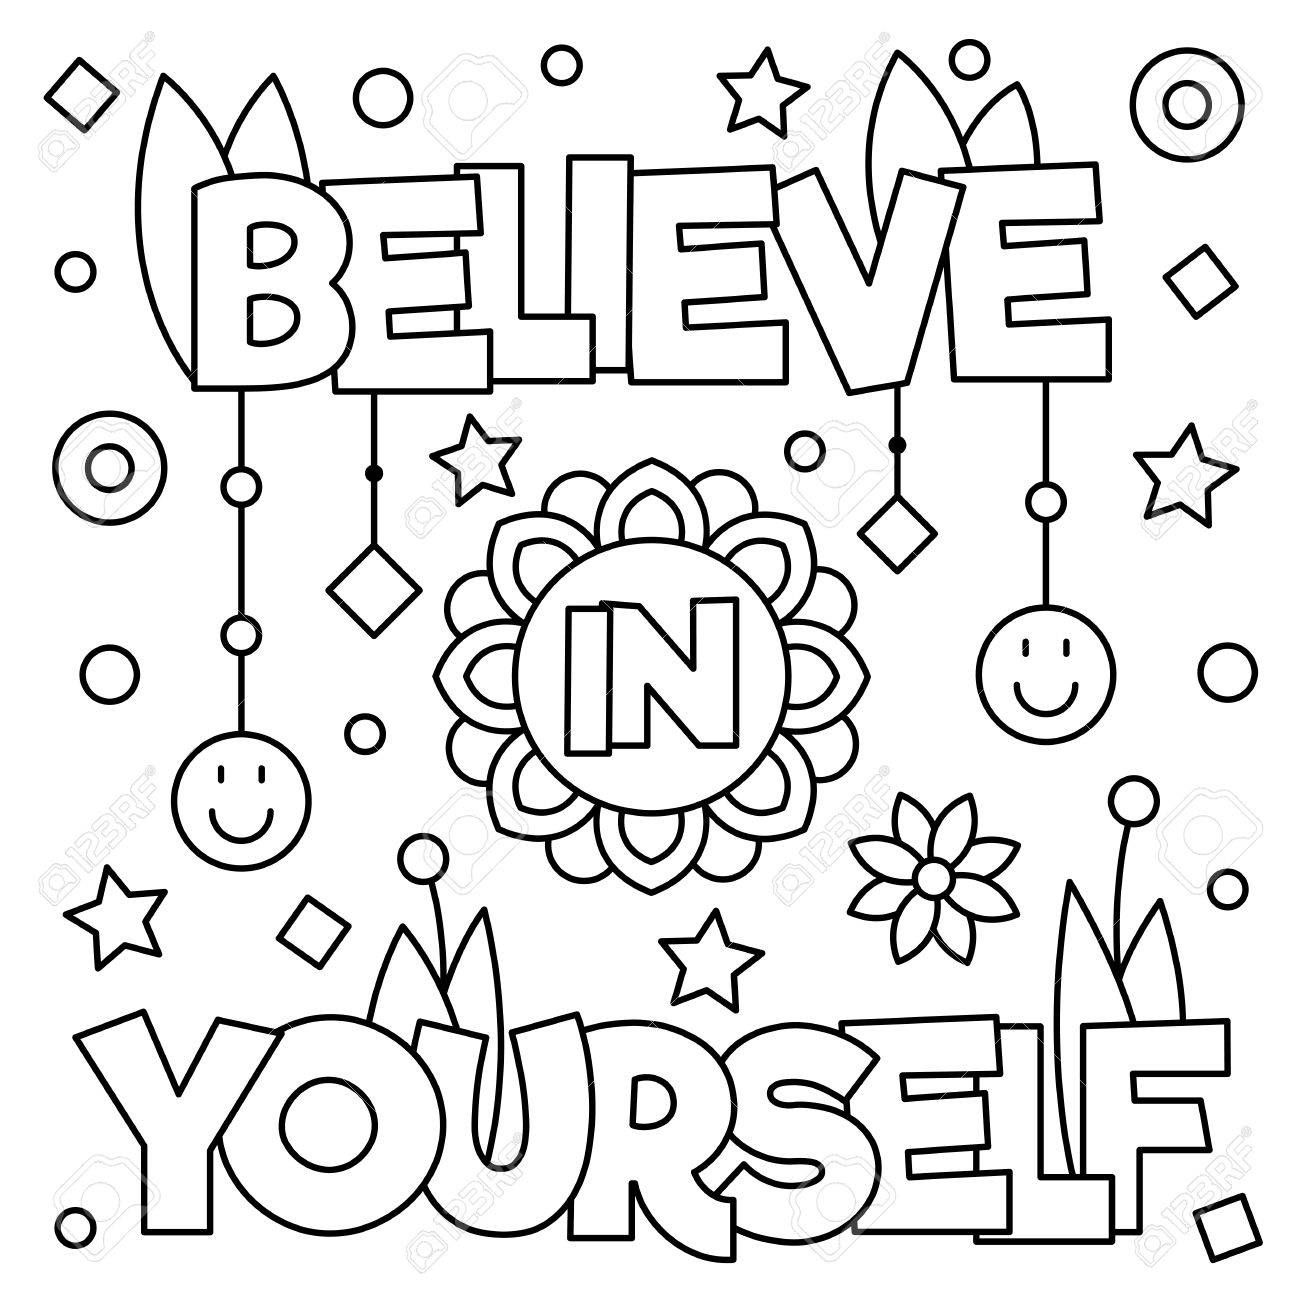 Believe In Yourself Coloring Page Black And White Vector Illustration Coloring Pages Inspirational Coloring Pages Color Worksheets